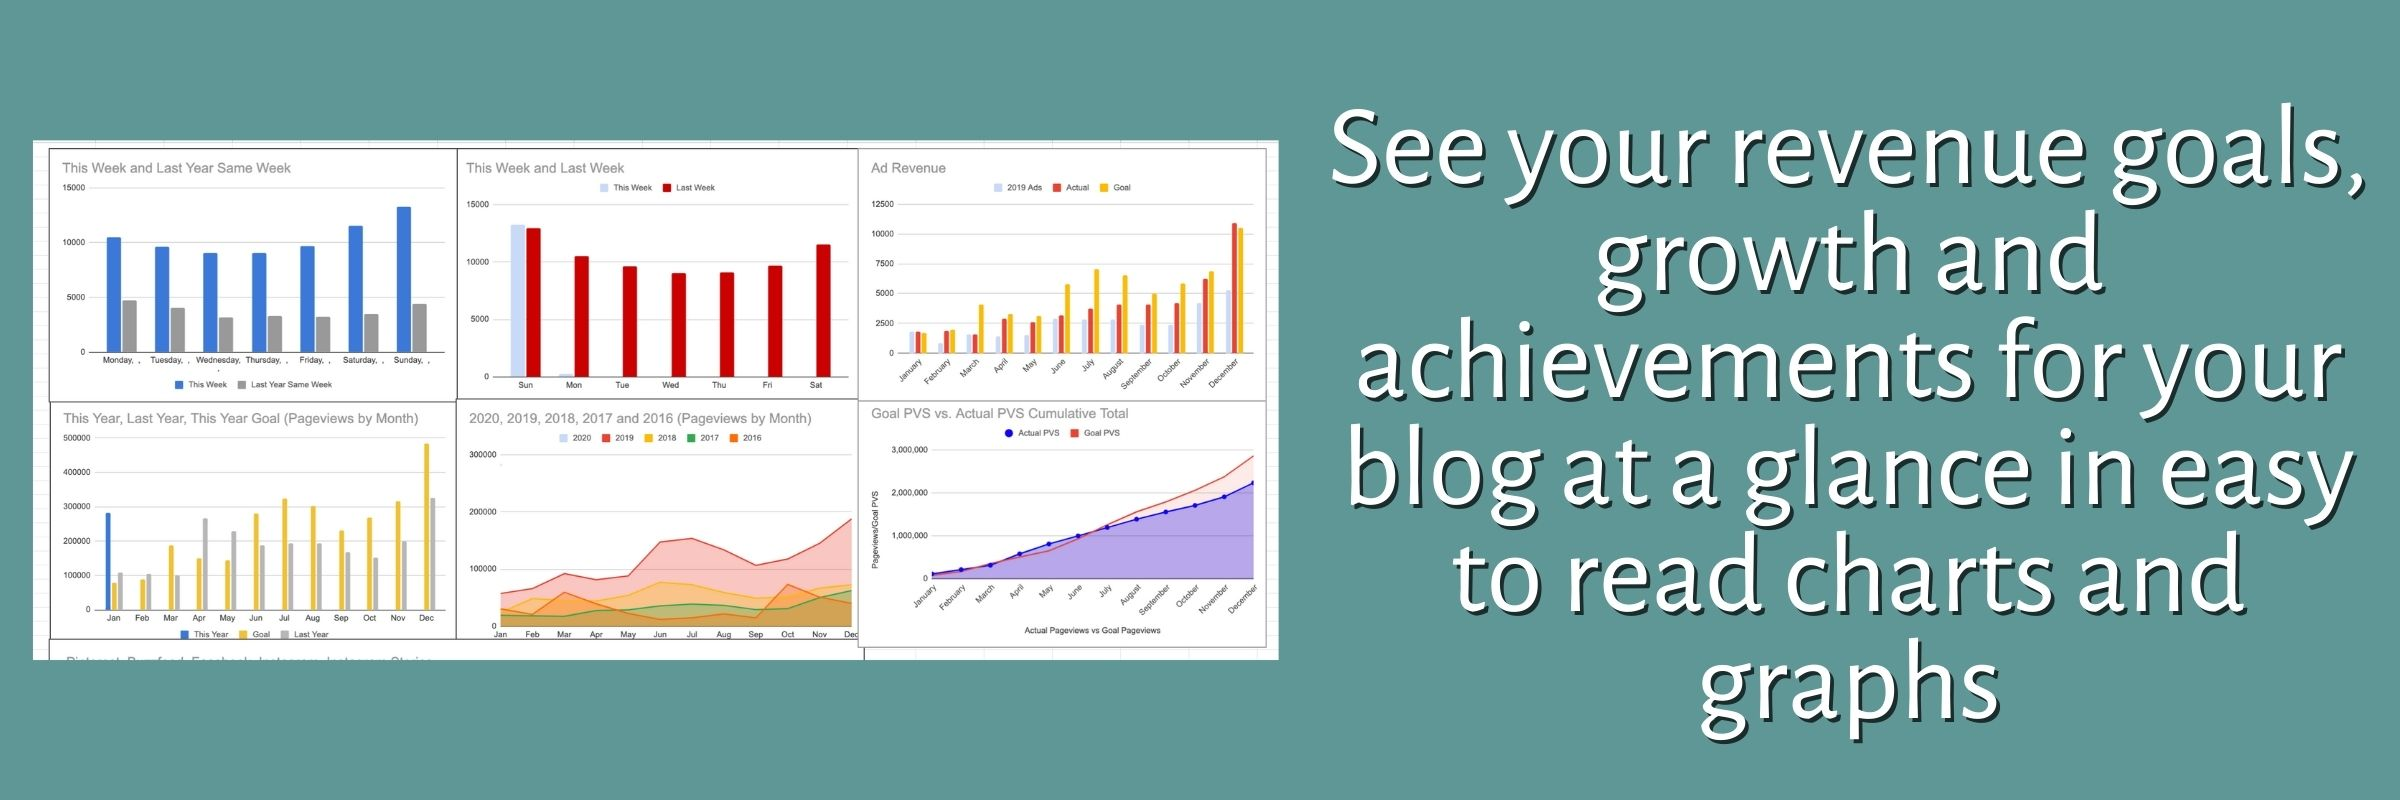 See your revenue goals, growth and achievements for your blog at a glance in easy to read charts and graphs